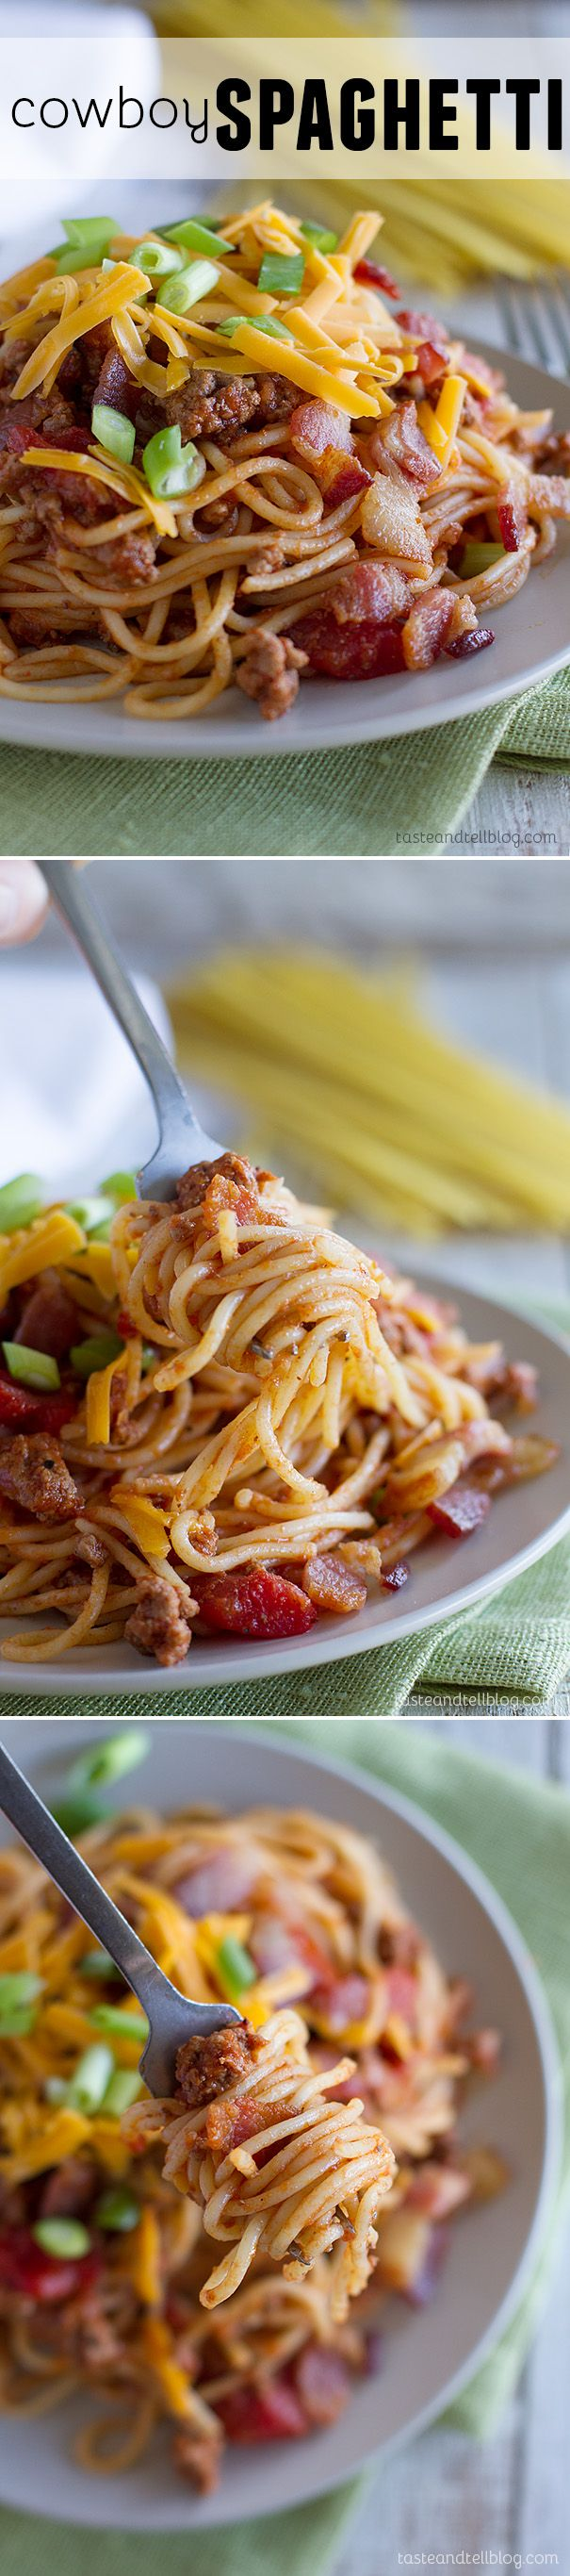 A change up from traditional Italian spaghetti and meat sauce, this Cowboy Spaghetti adds in bacon and cheddar cheese for an American twist on a classic.